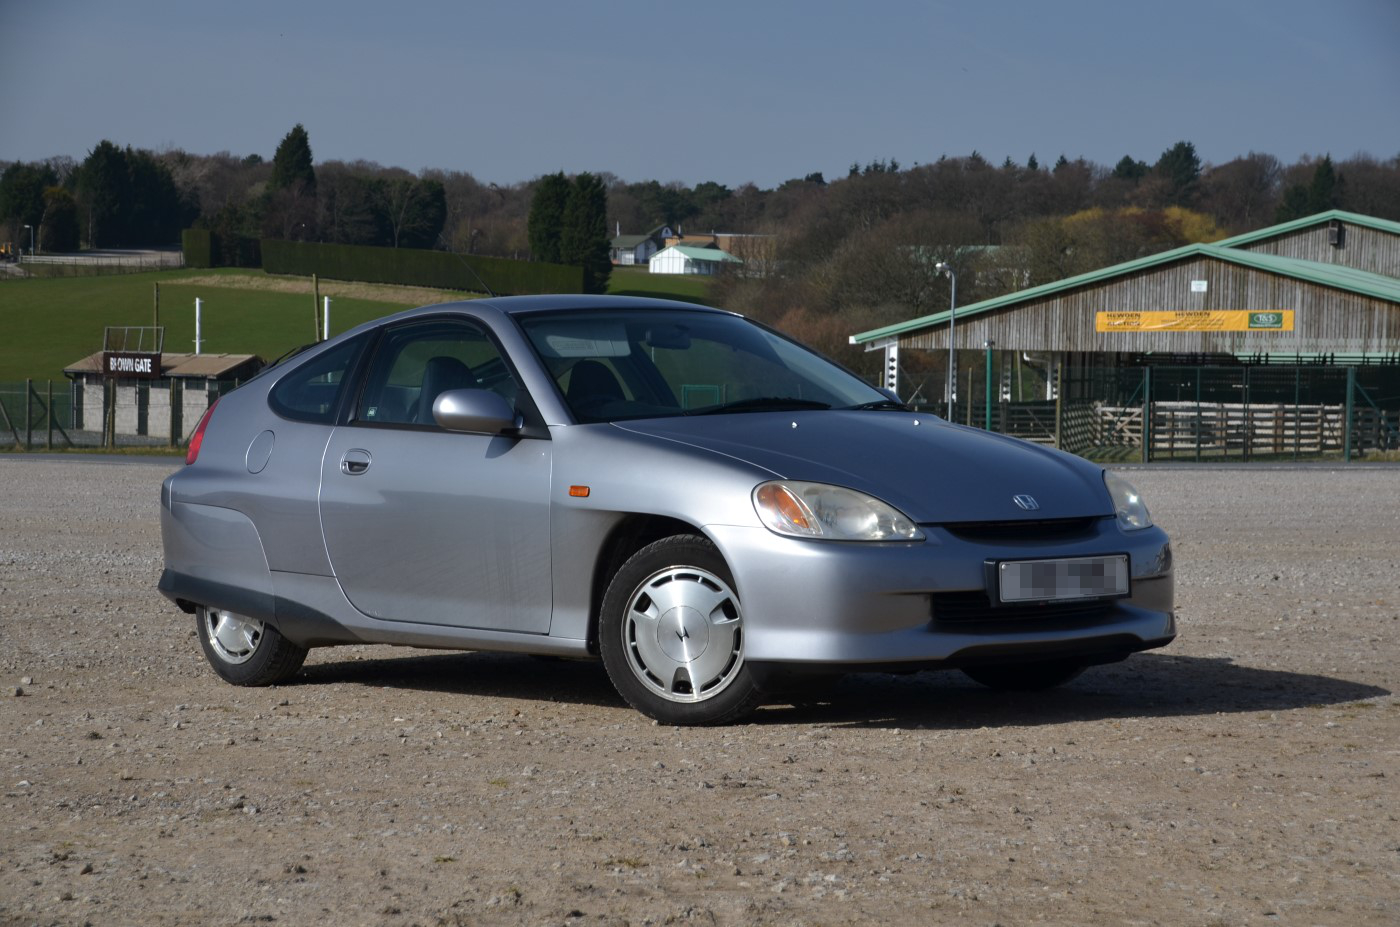 The History Of Honda Insight Electric Cars And Hybrid Vehicle